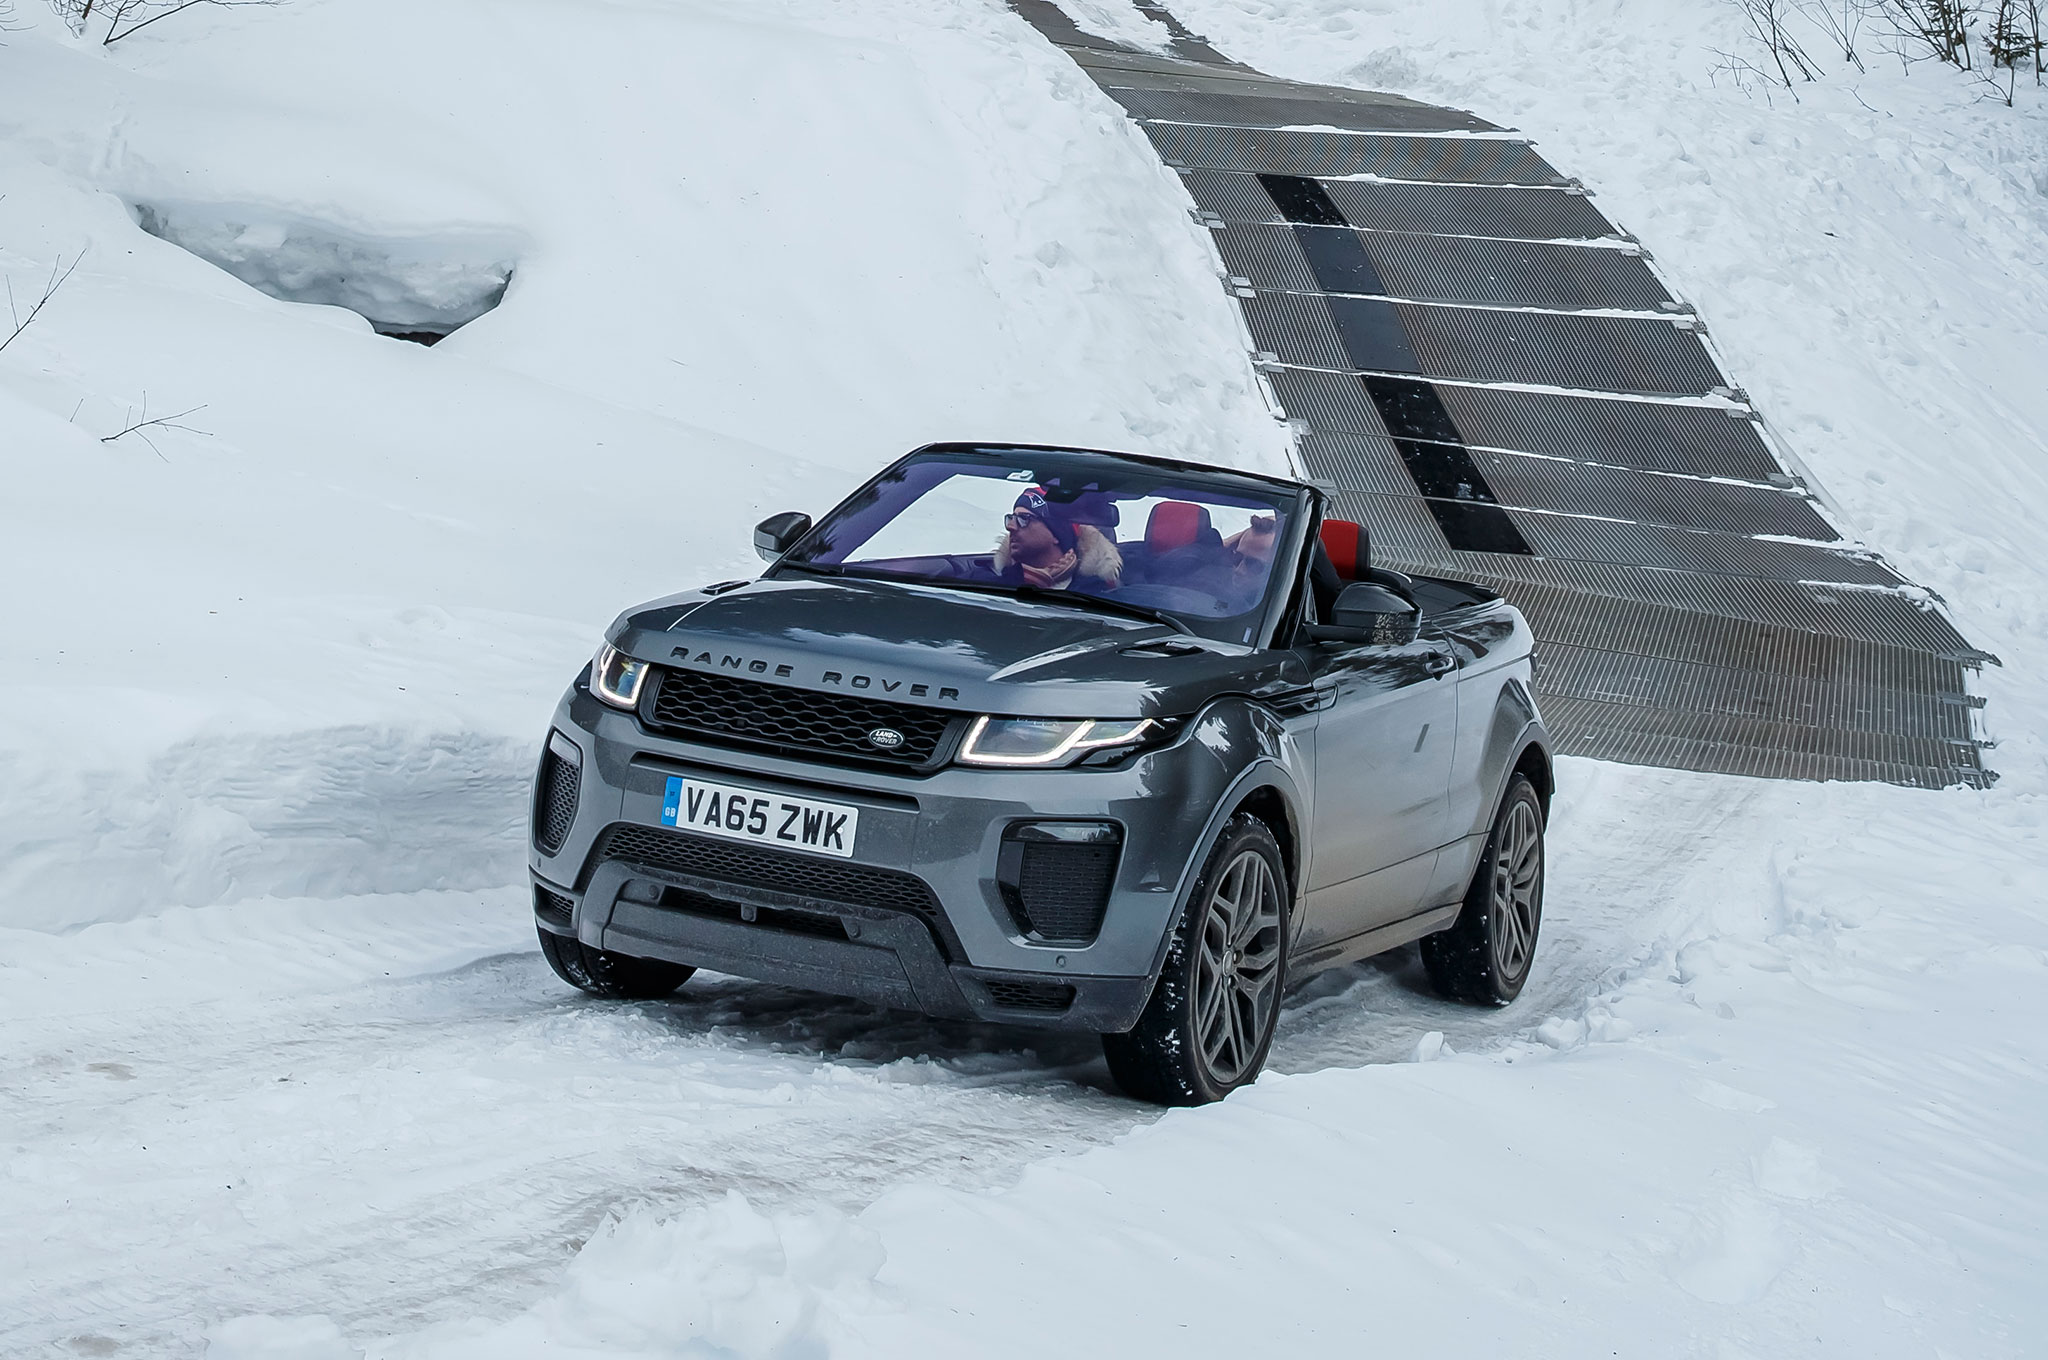 Price Of Range Rover 2017 >> 2017 Range Rover Evoque Convertible Review